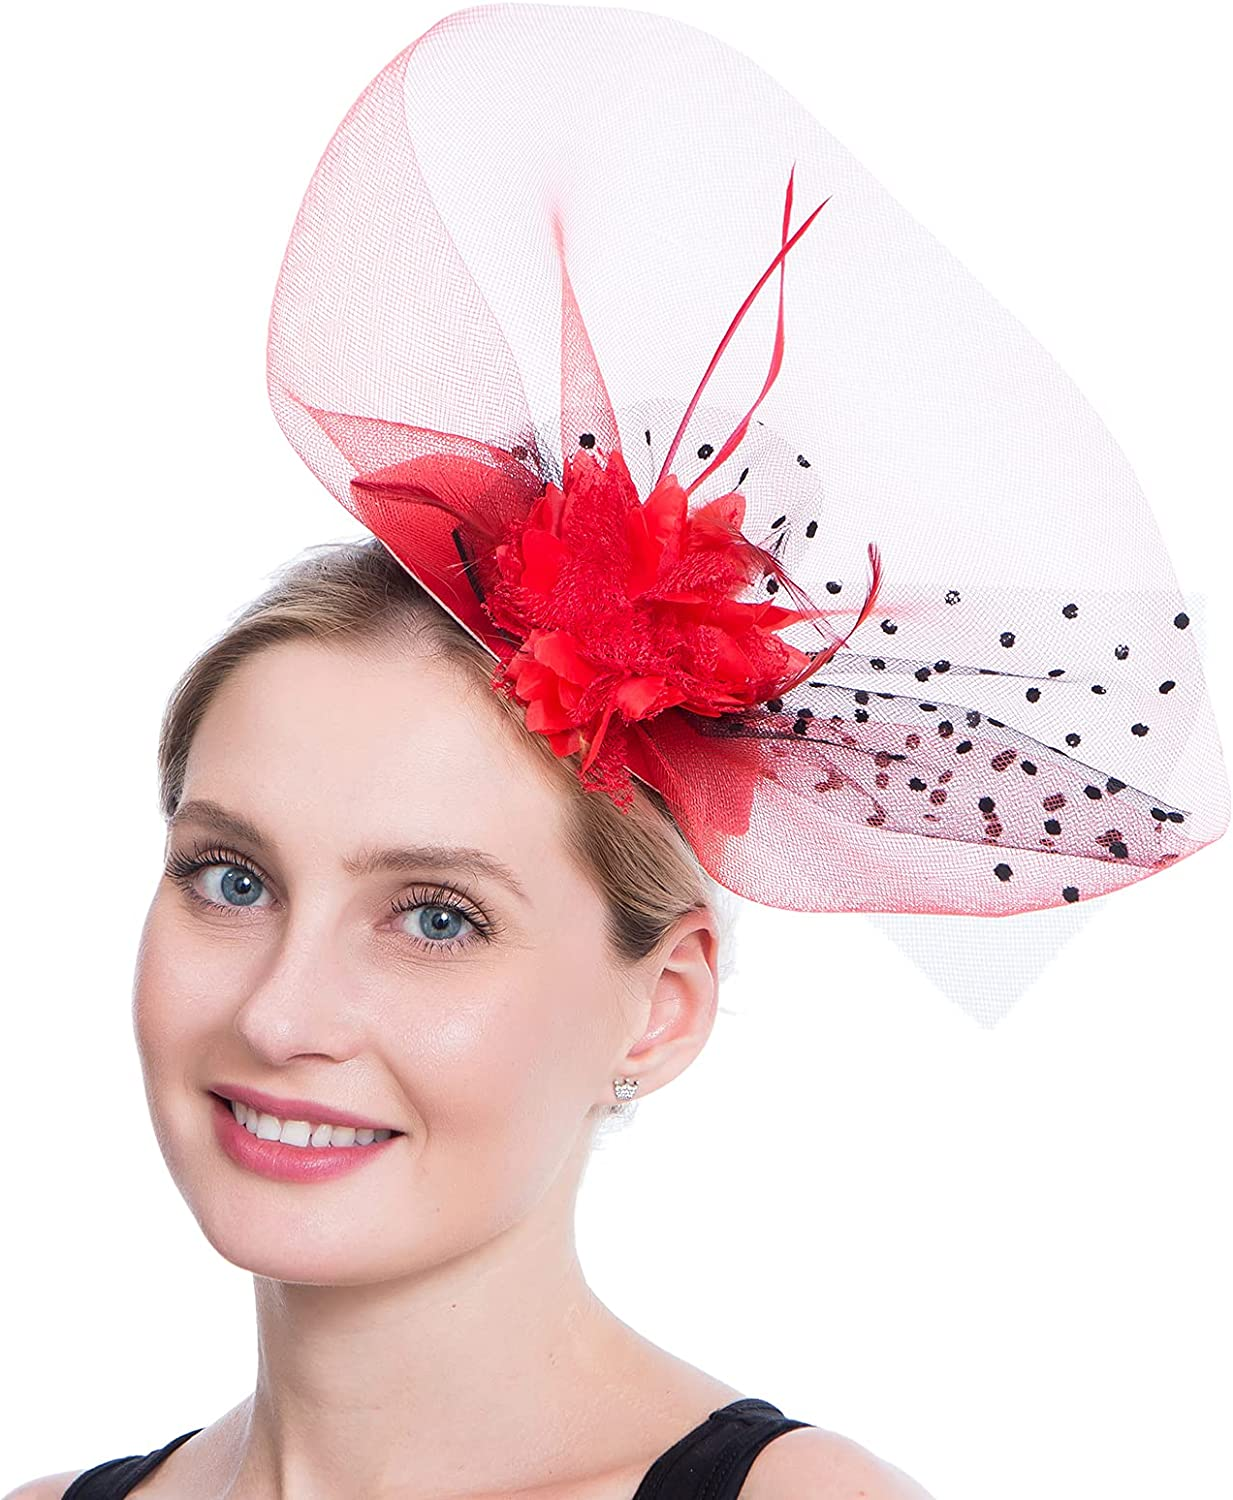 Ogteud Fascinators for Women Pillbox Hat with Veil Flower Feathers Vintage Derby Tea Party Hats Headband Clip for Wedding